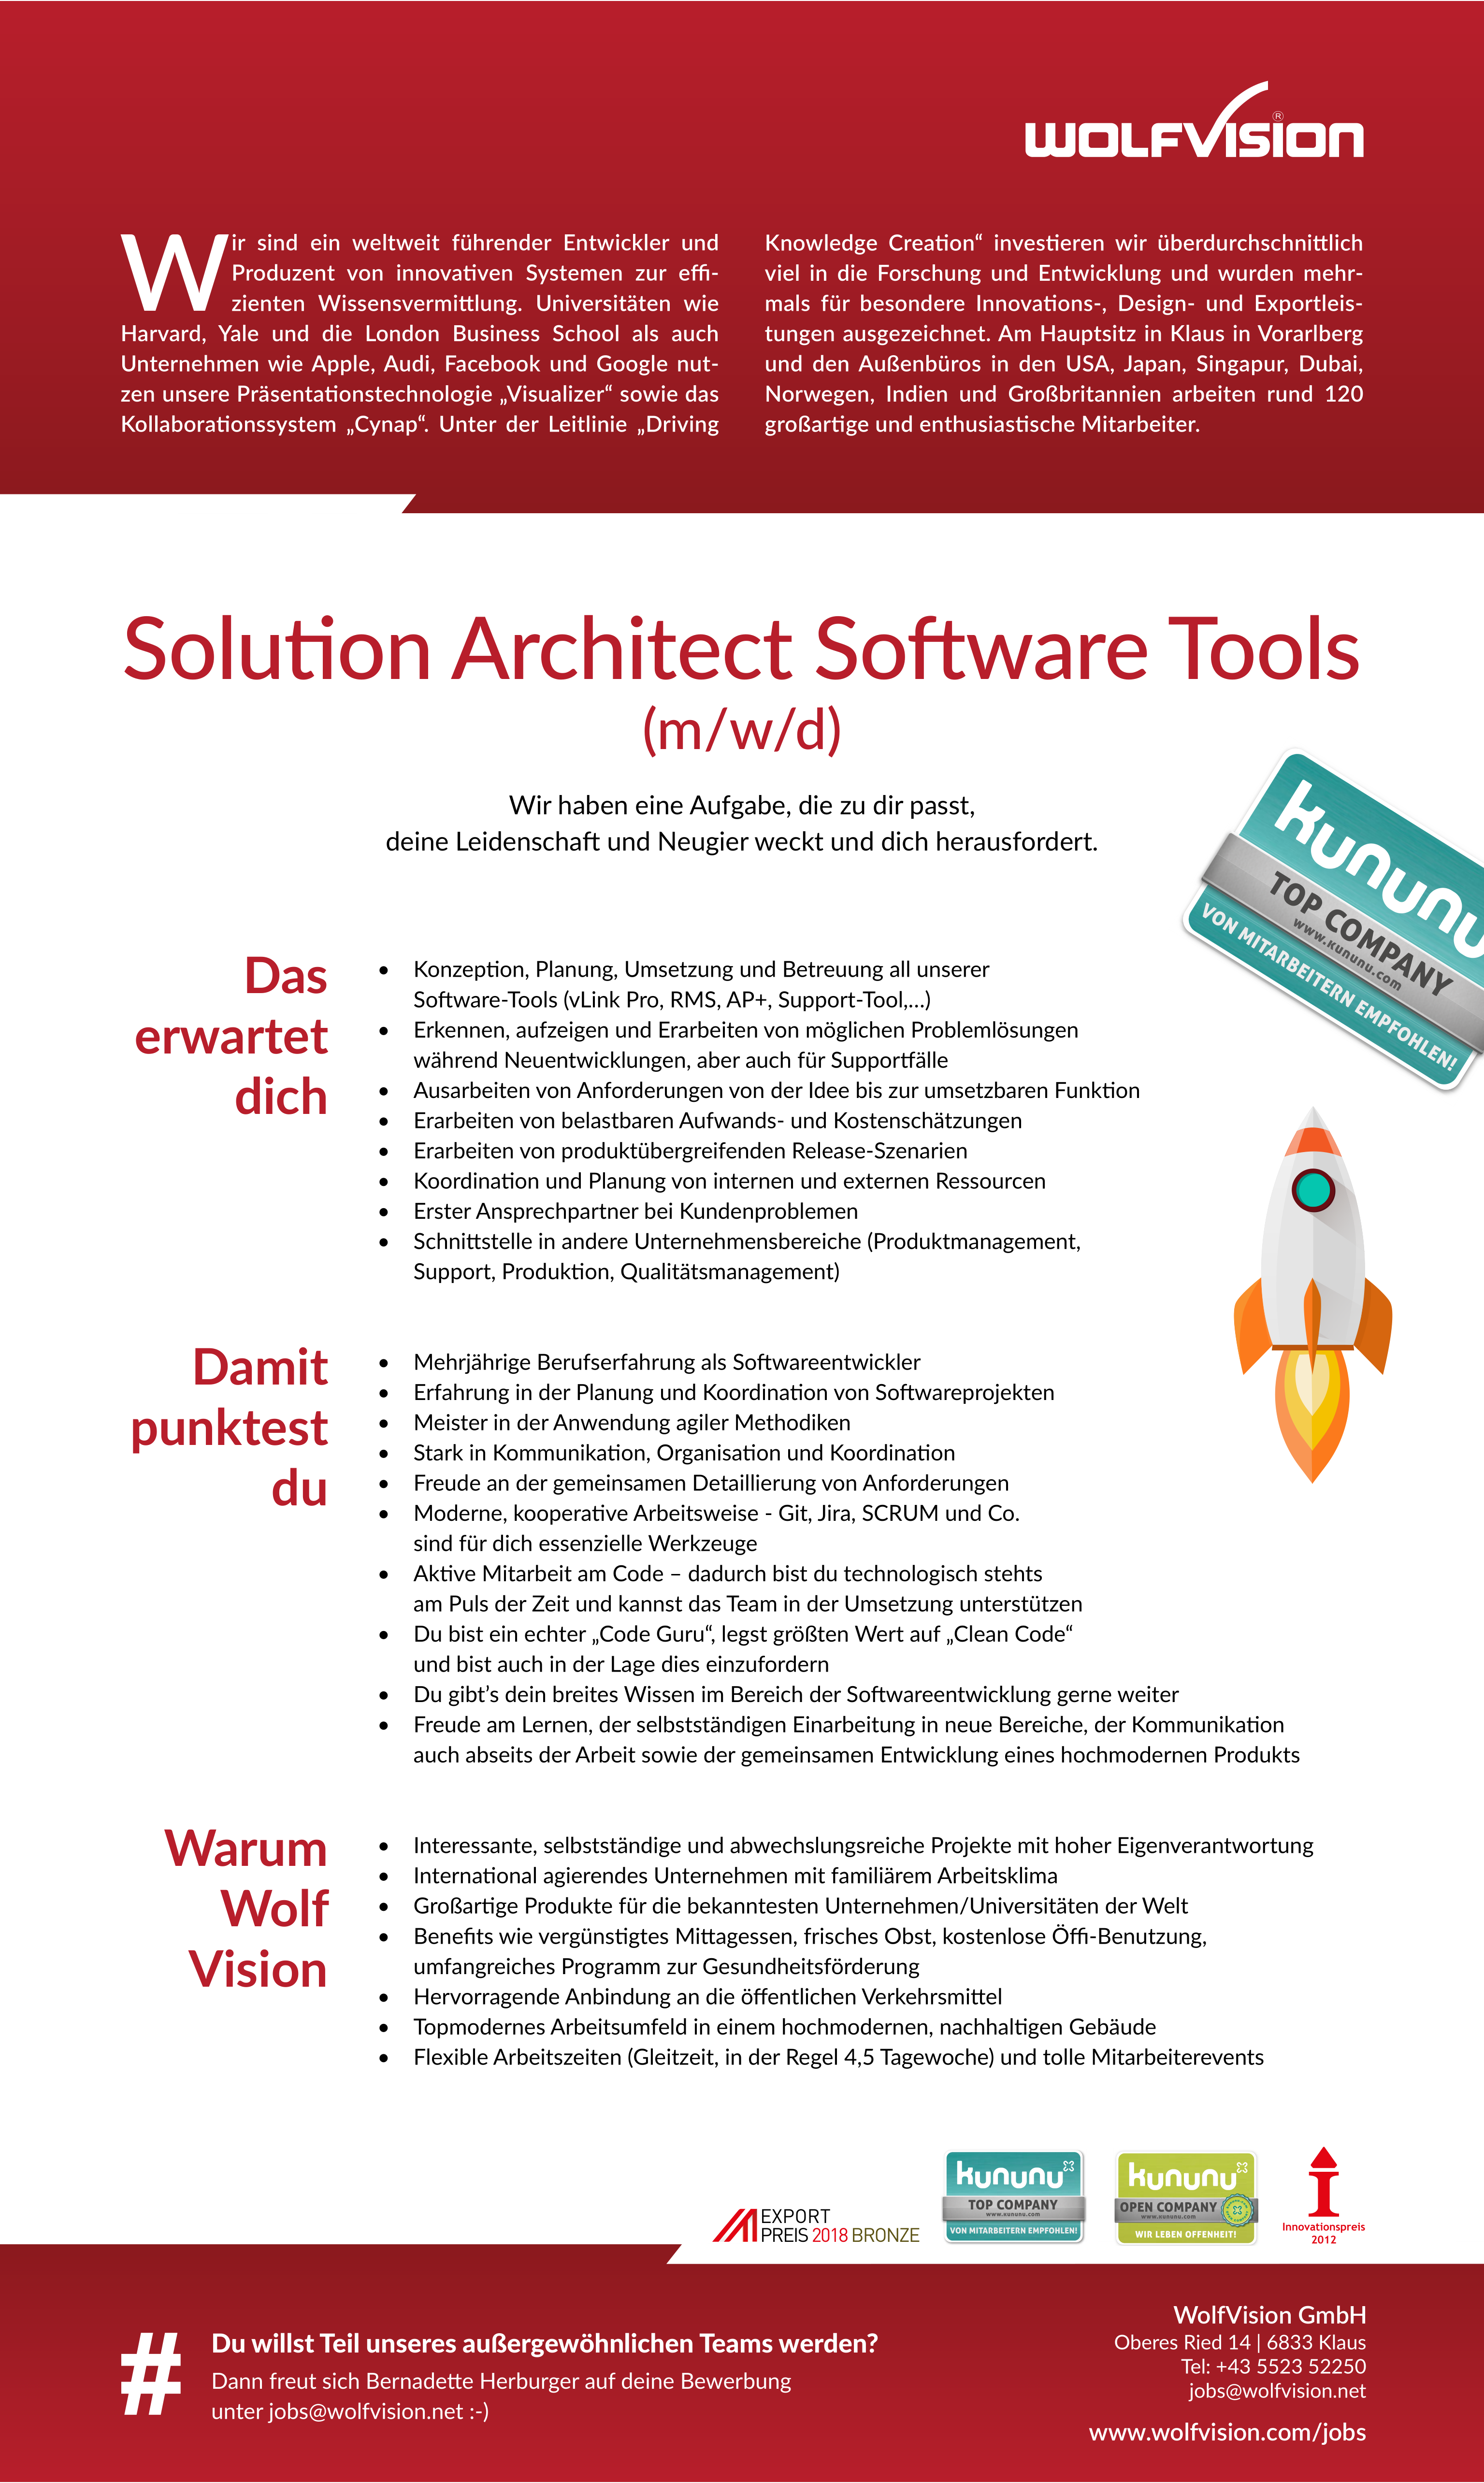 Solution Archtitect Software Tools (m/w/d)